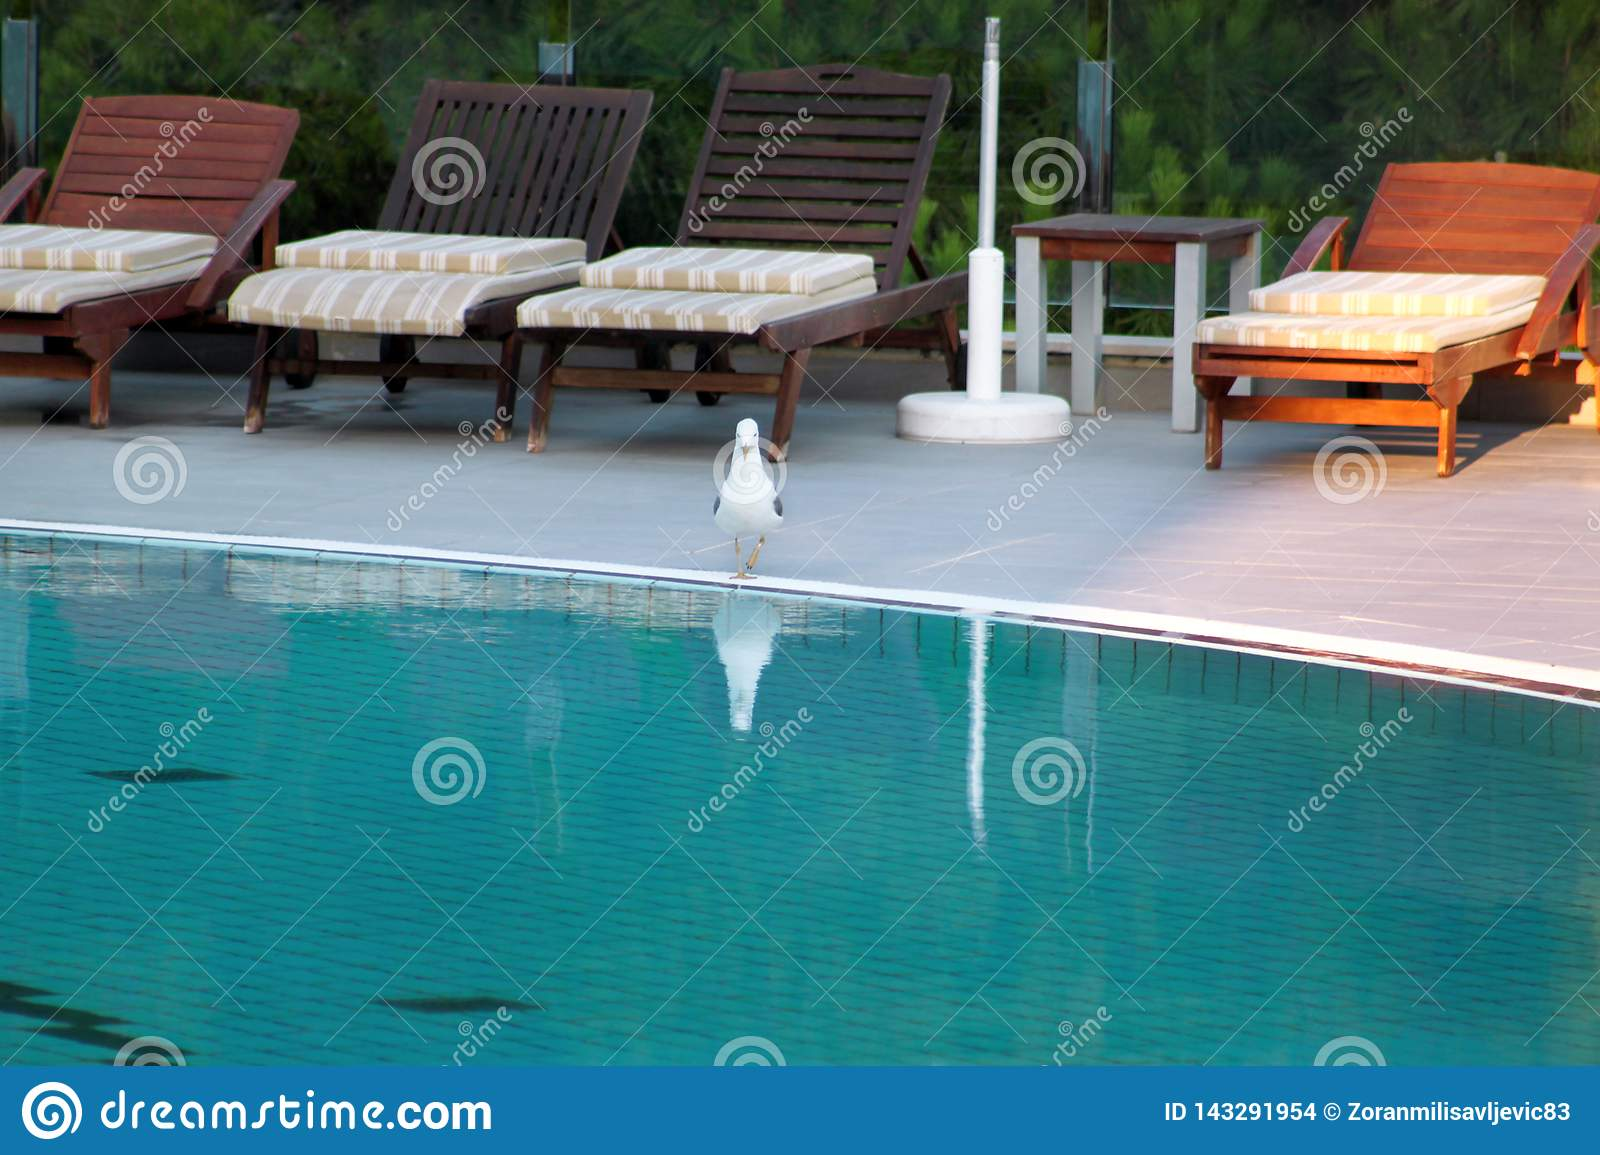 Swimming pool of luxury holiday hotel, amazing view and scene of seagull enjoying alone. Relax near pool with handrail, sunbeds.